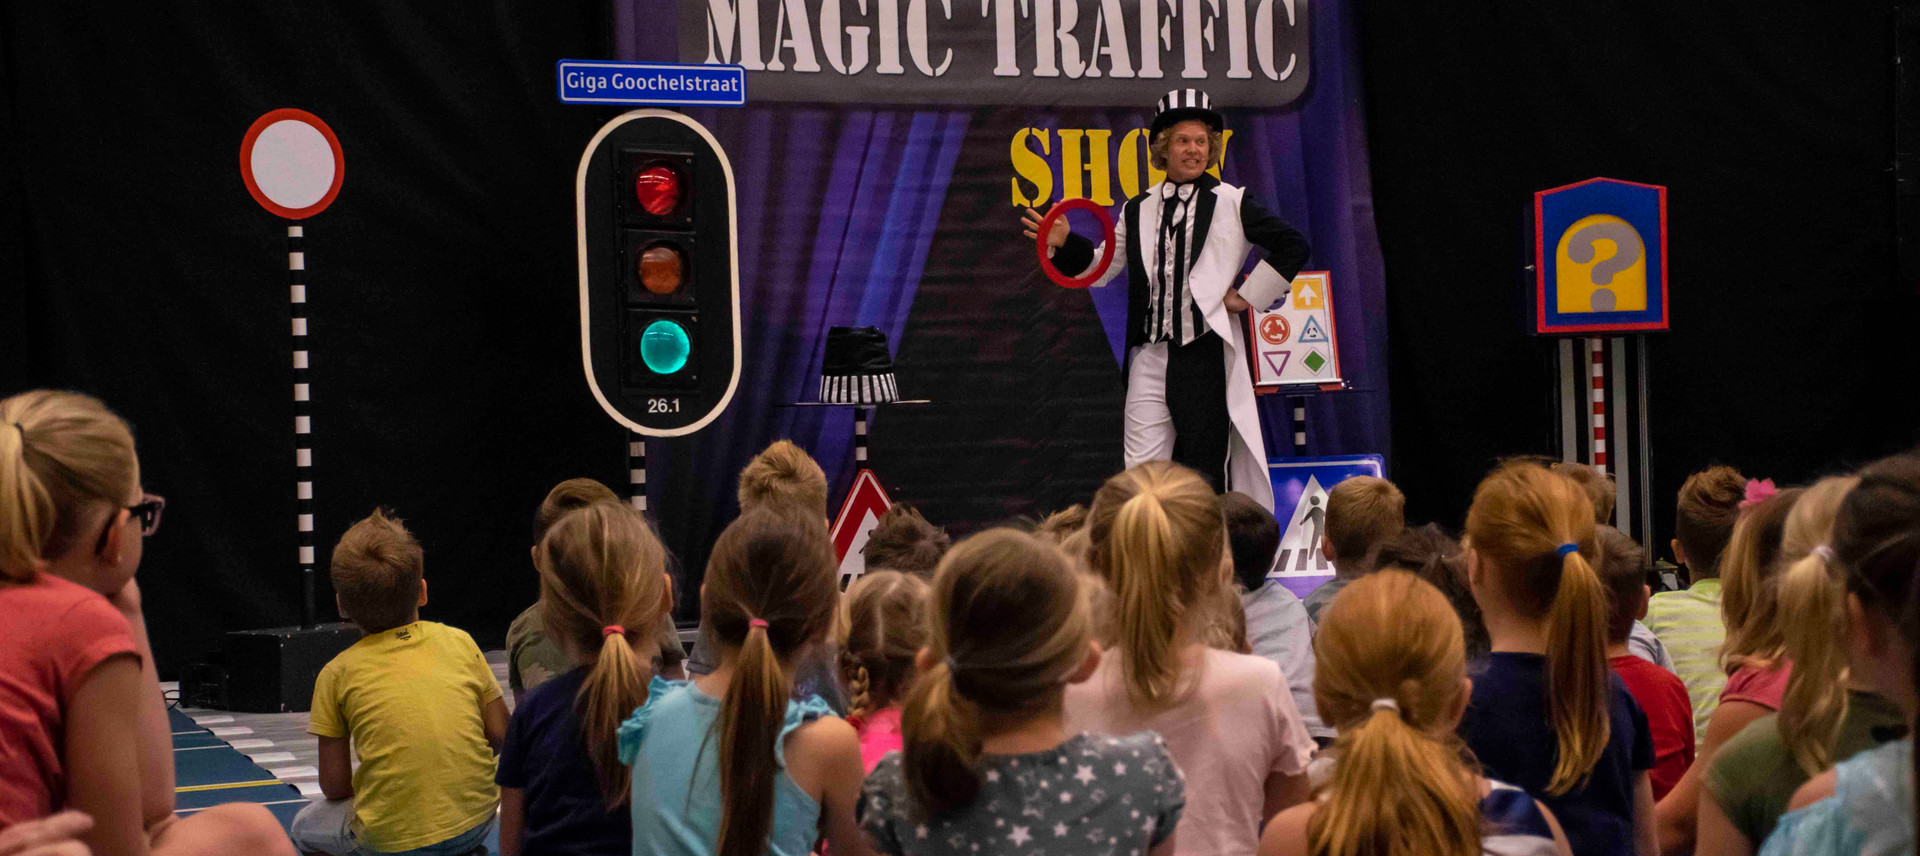 voorstelling verkeer thema show traffic